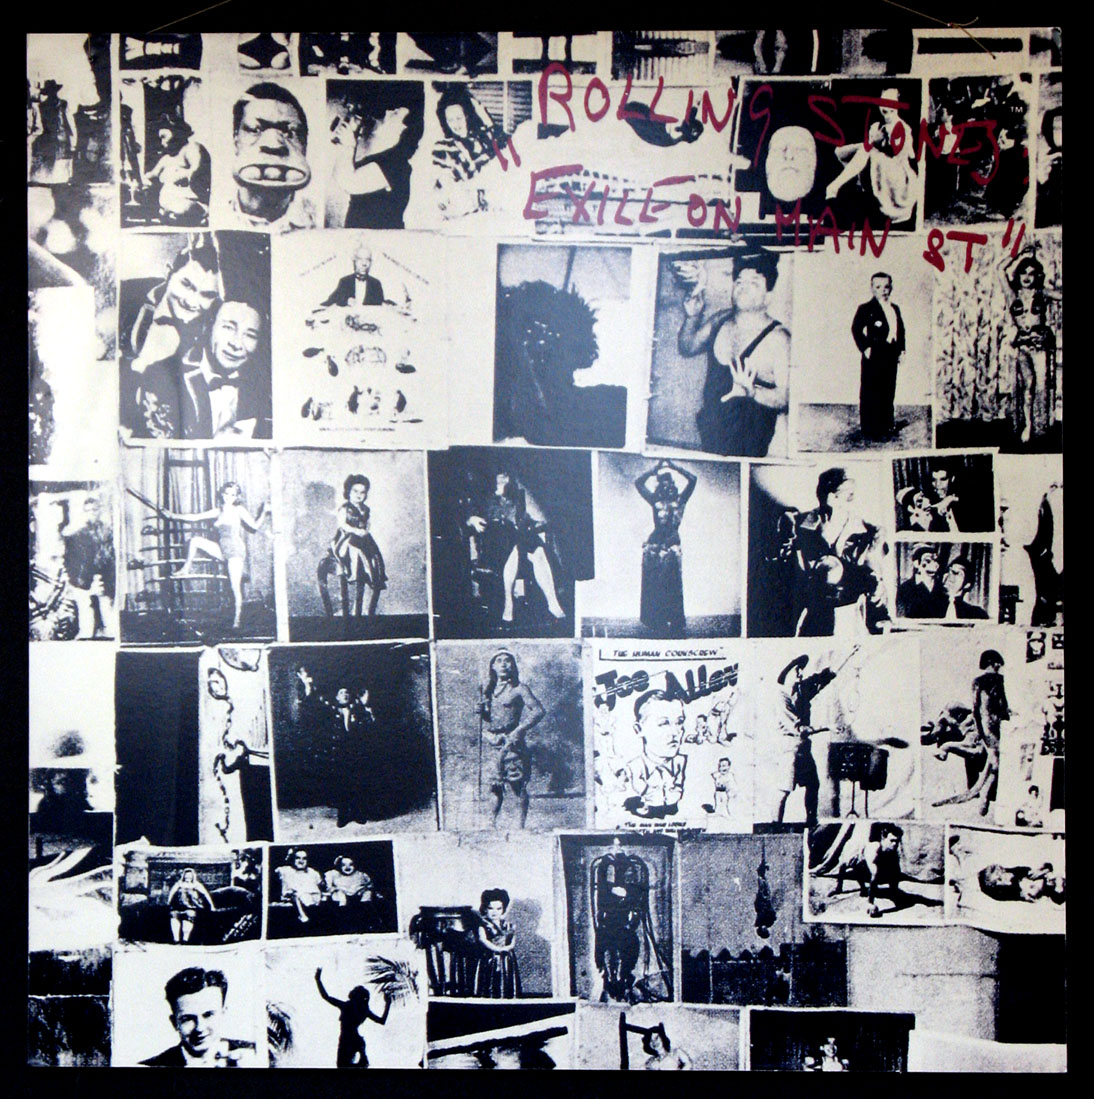 ROLLING STONES EXILE ON MAIN STREET PROMOTIONAL POSTER @ FilmPosters.com